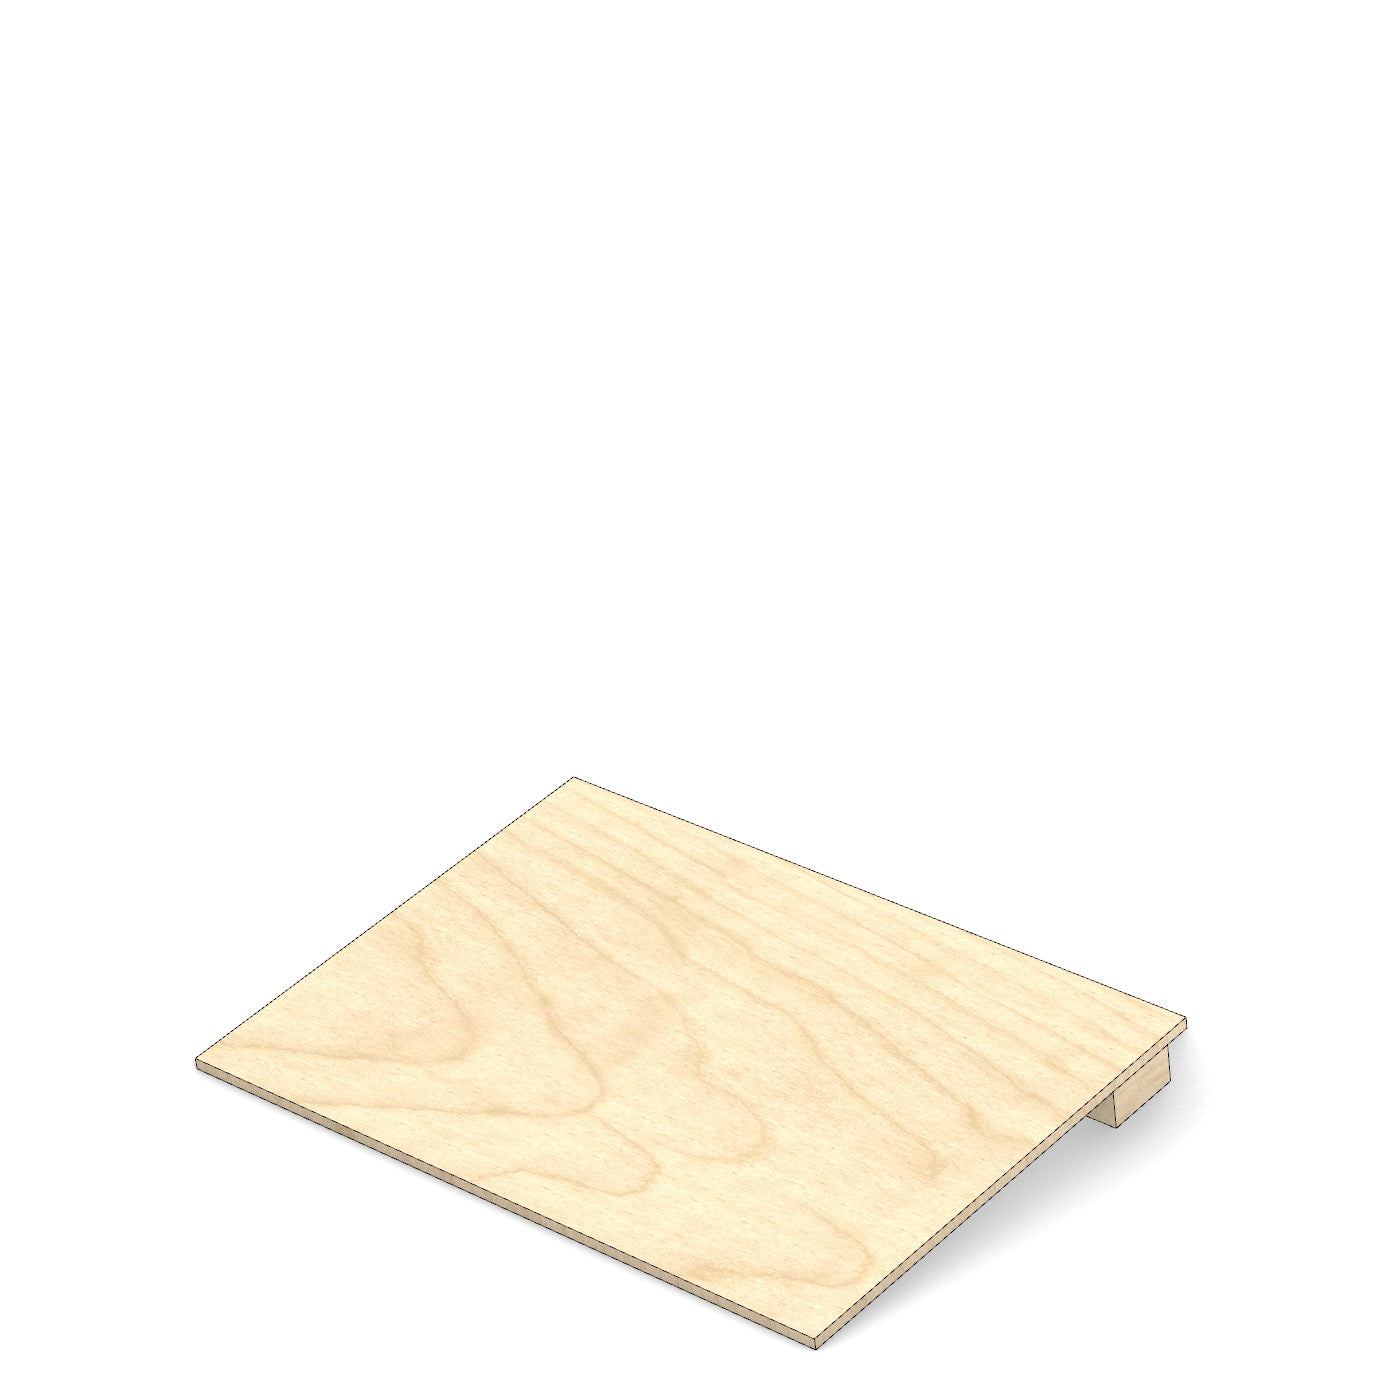 ramp - from $99